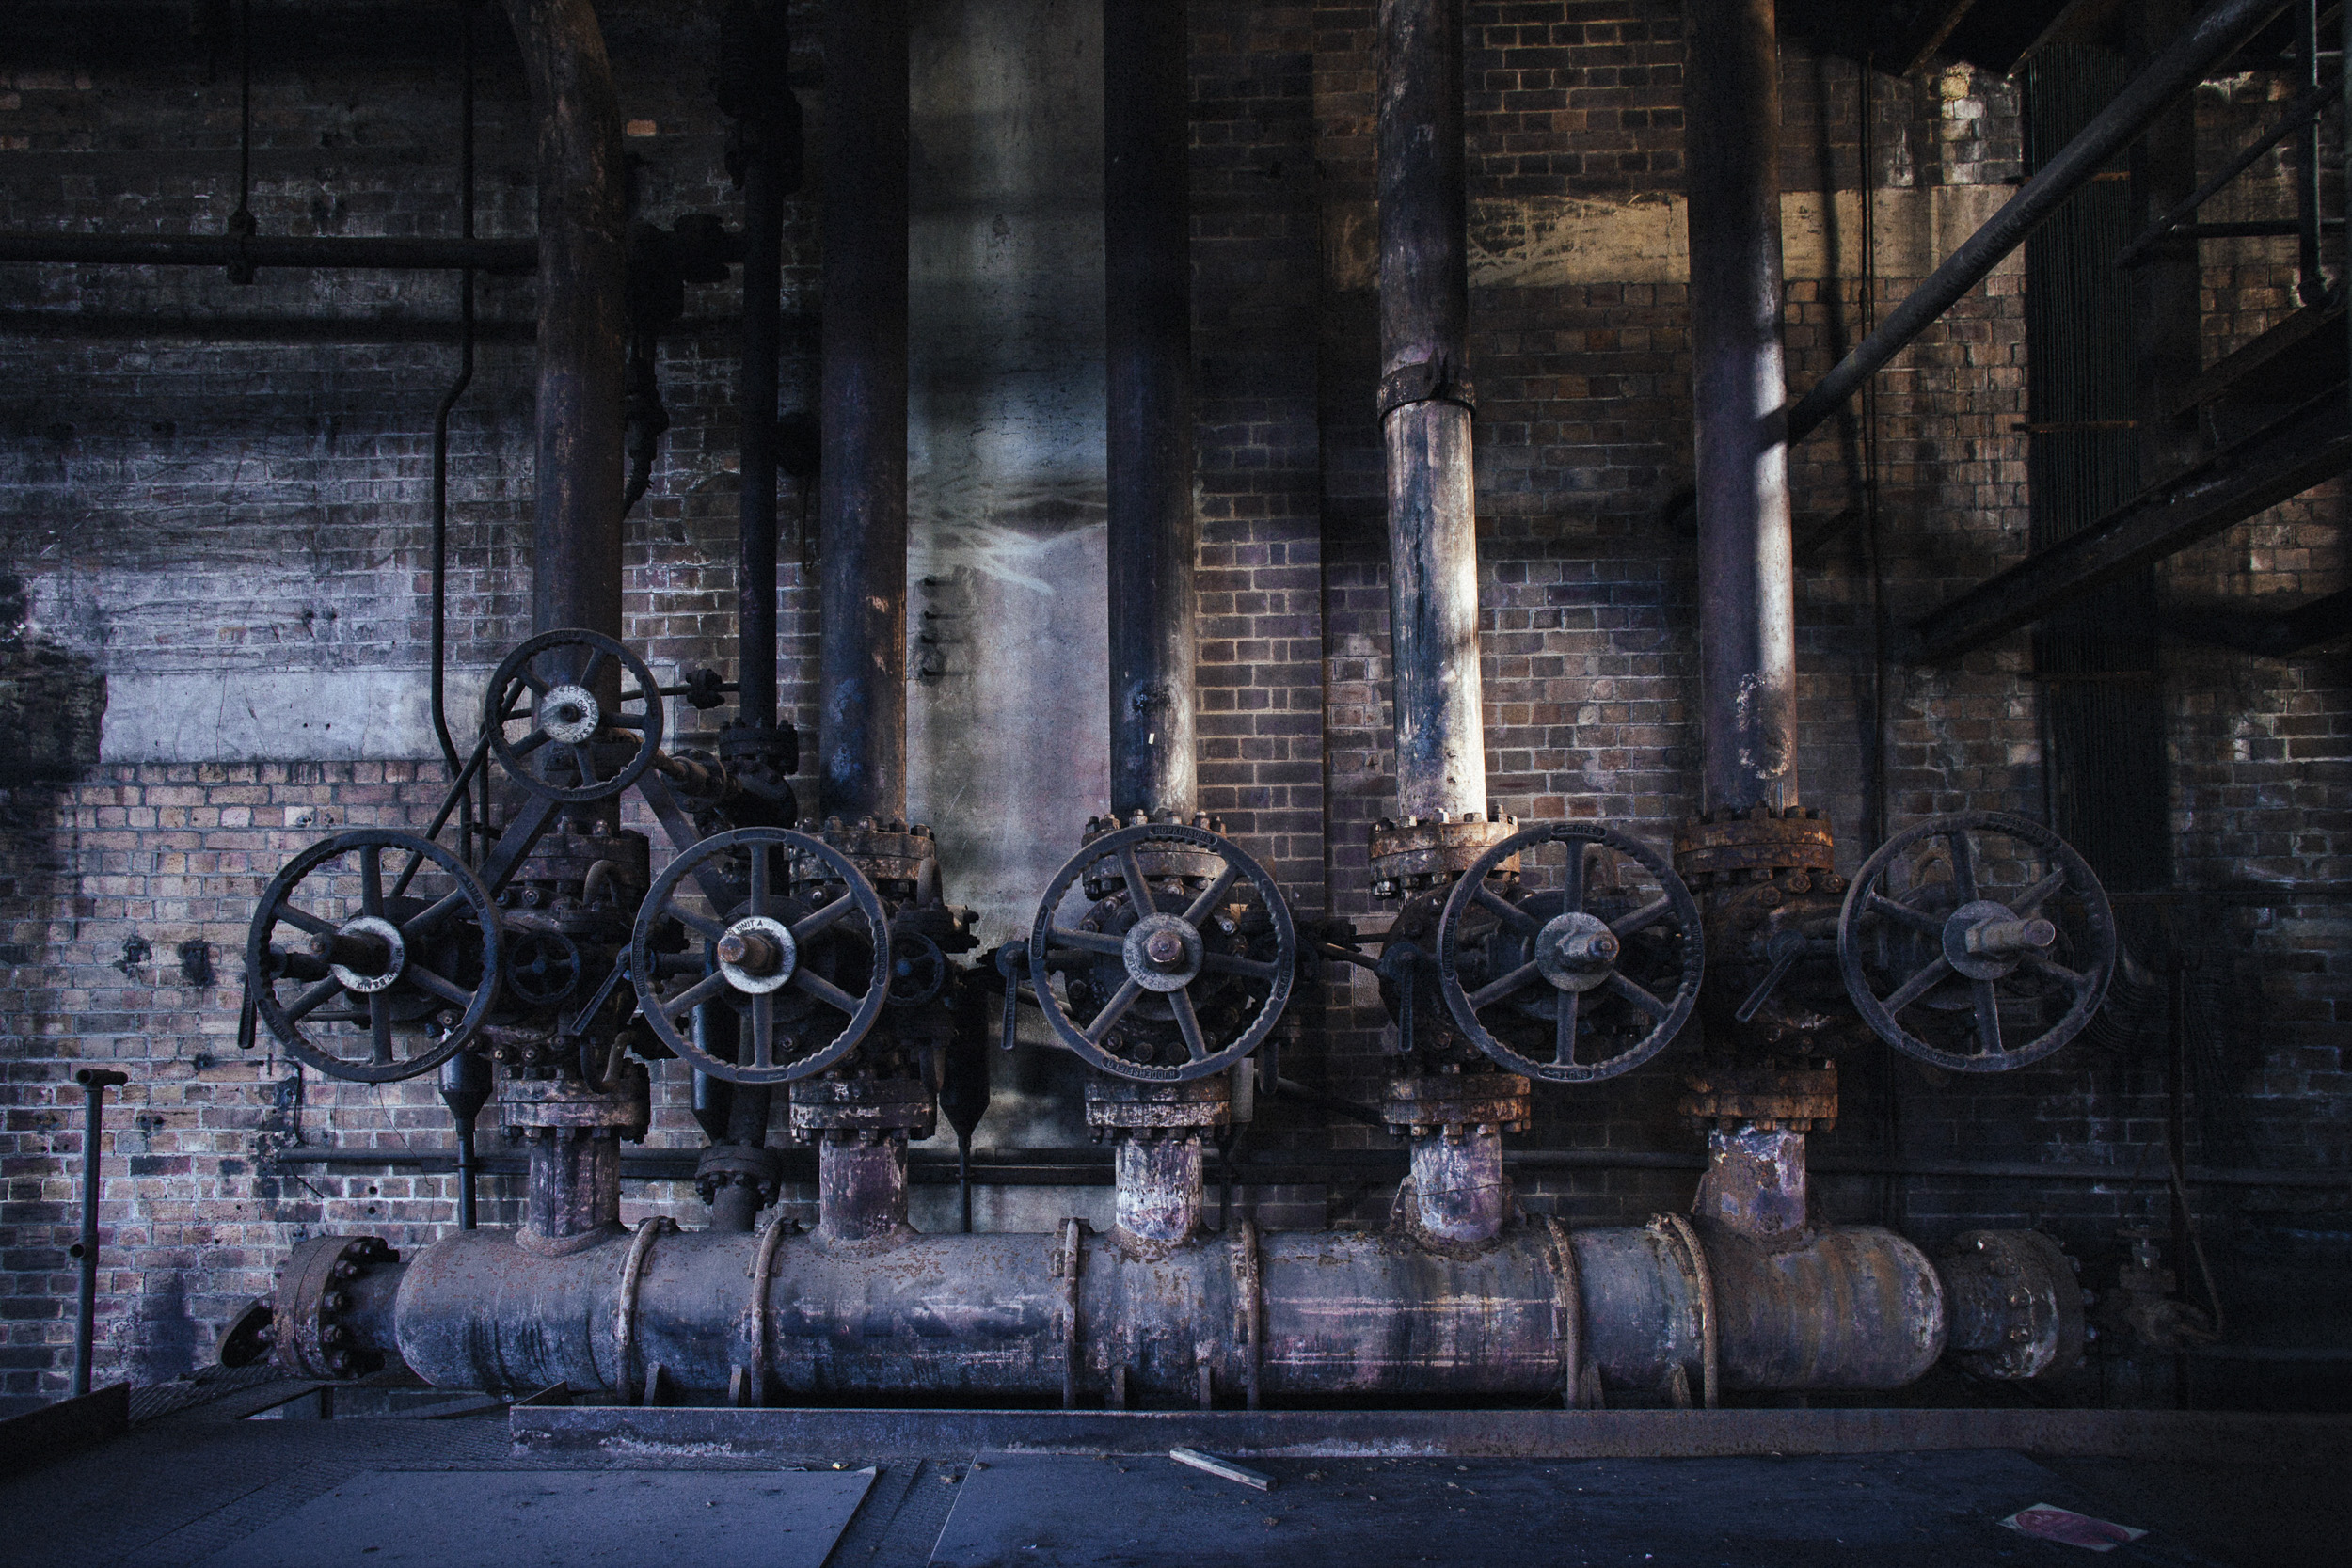 mackintosh_photography_industrial_architecture_03.jpg